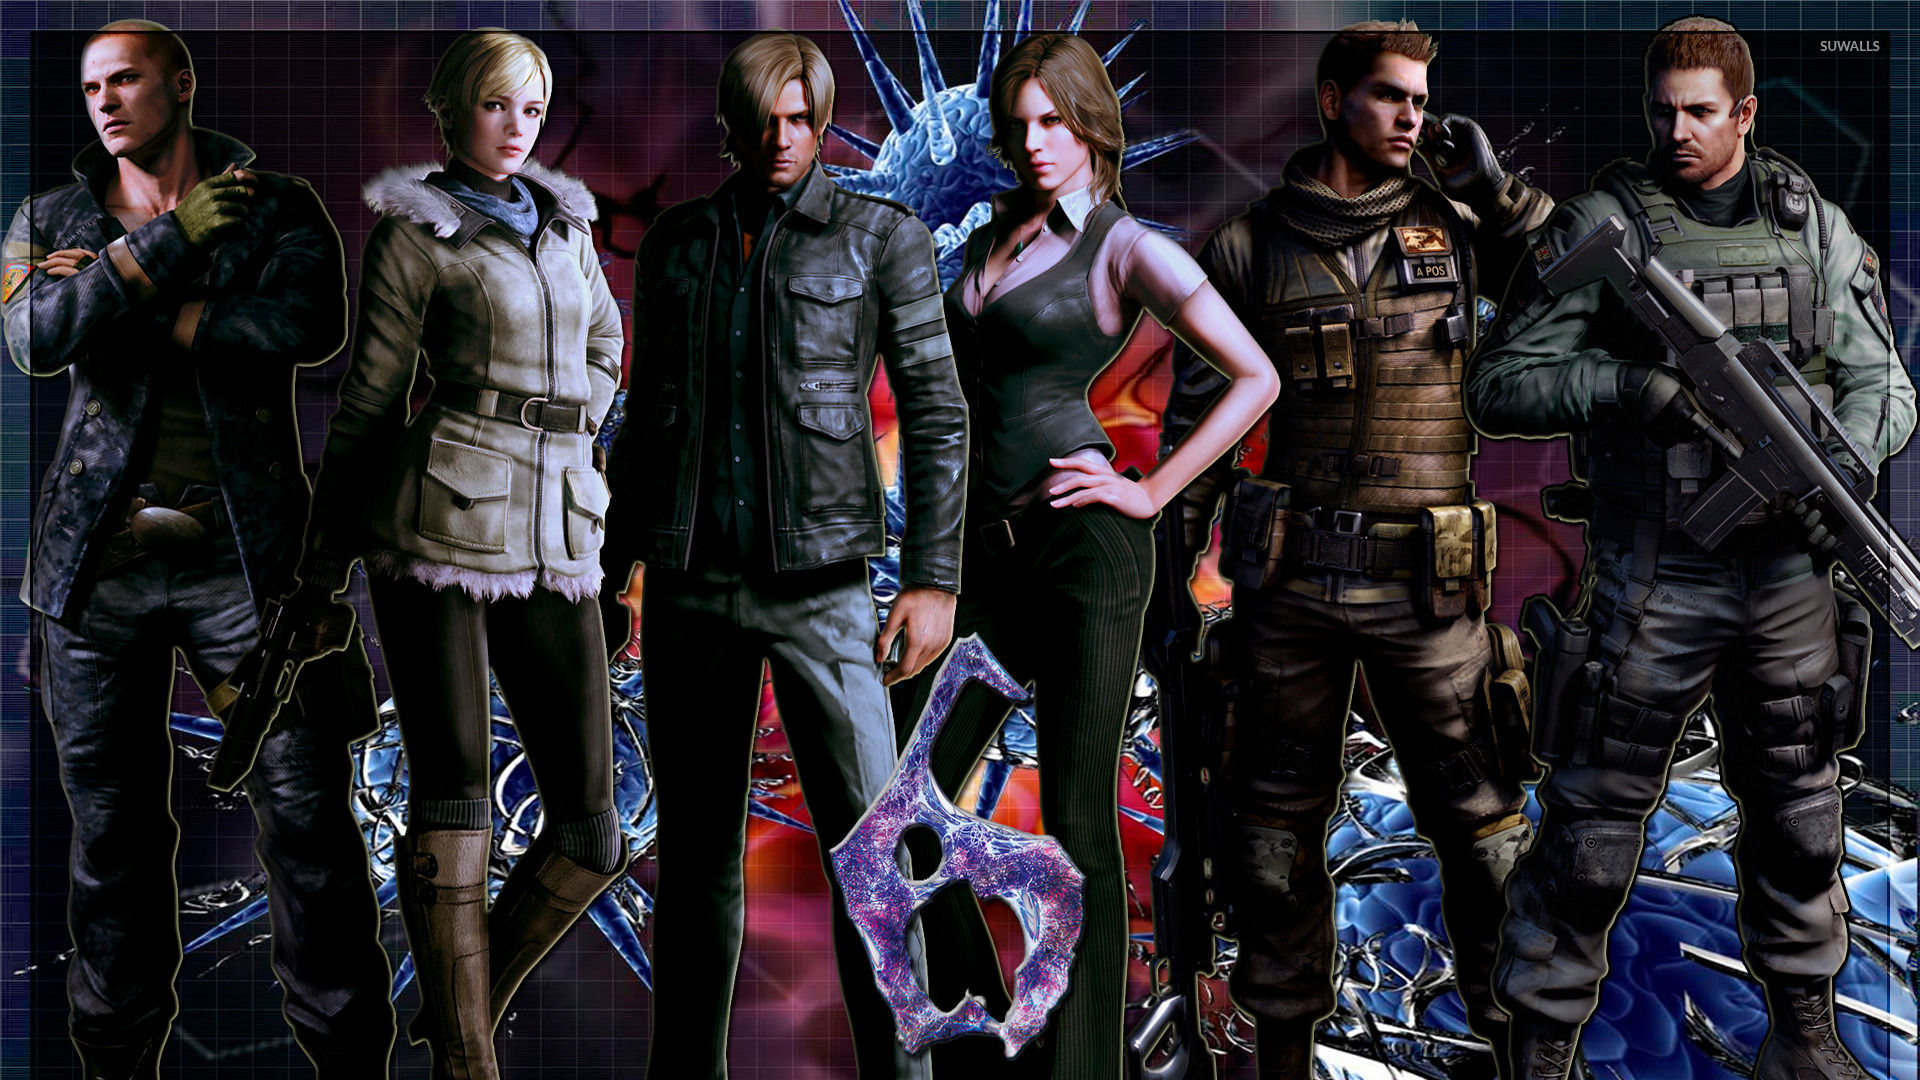 Resident Evil 6 4 Wallpaper Game Wallpapers 21065